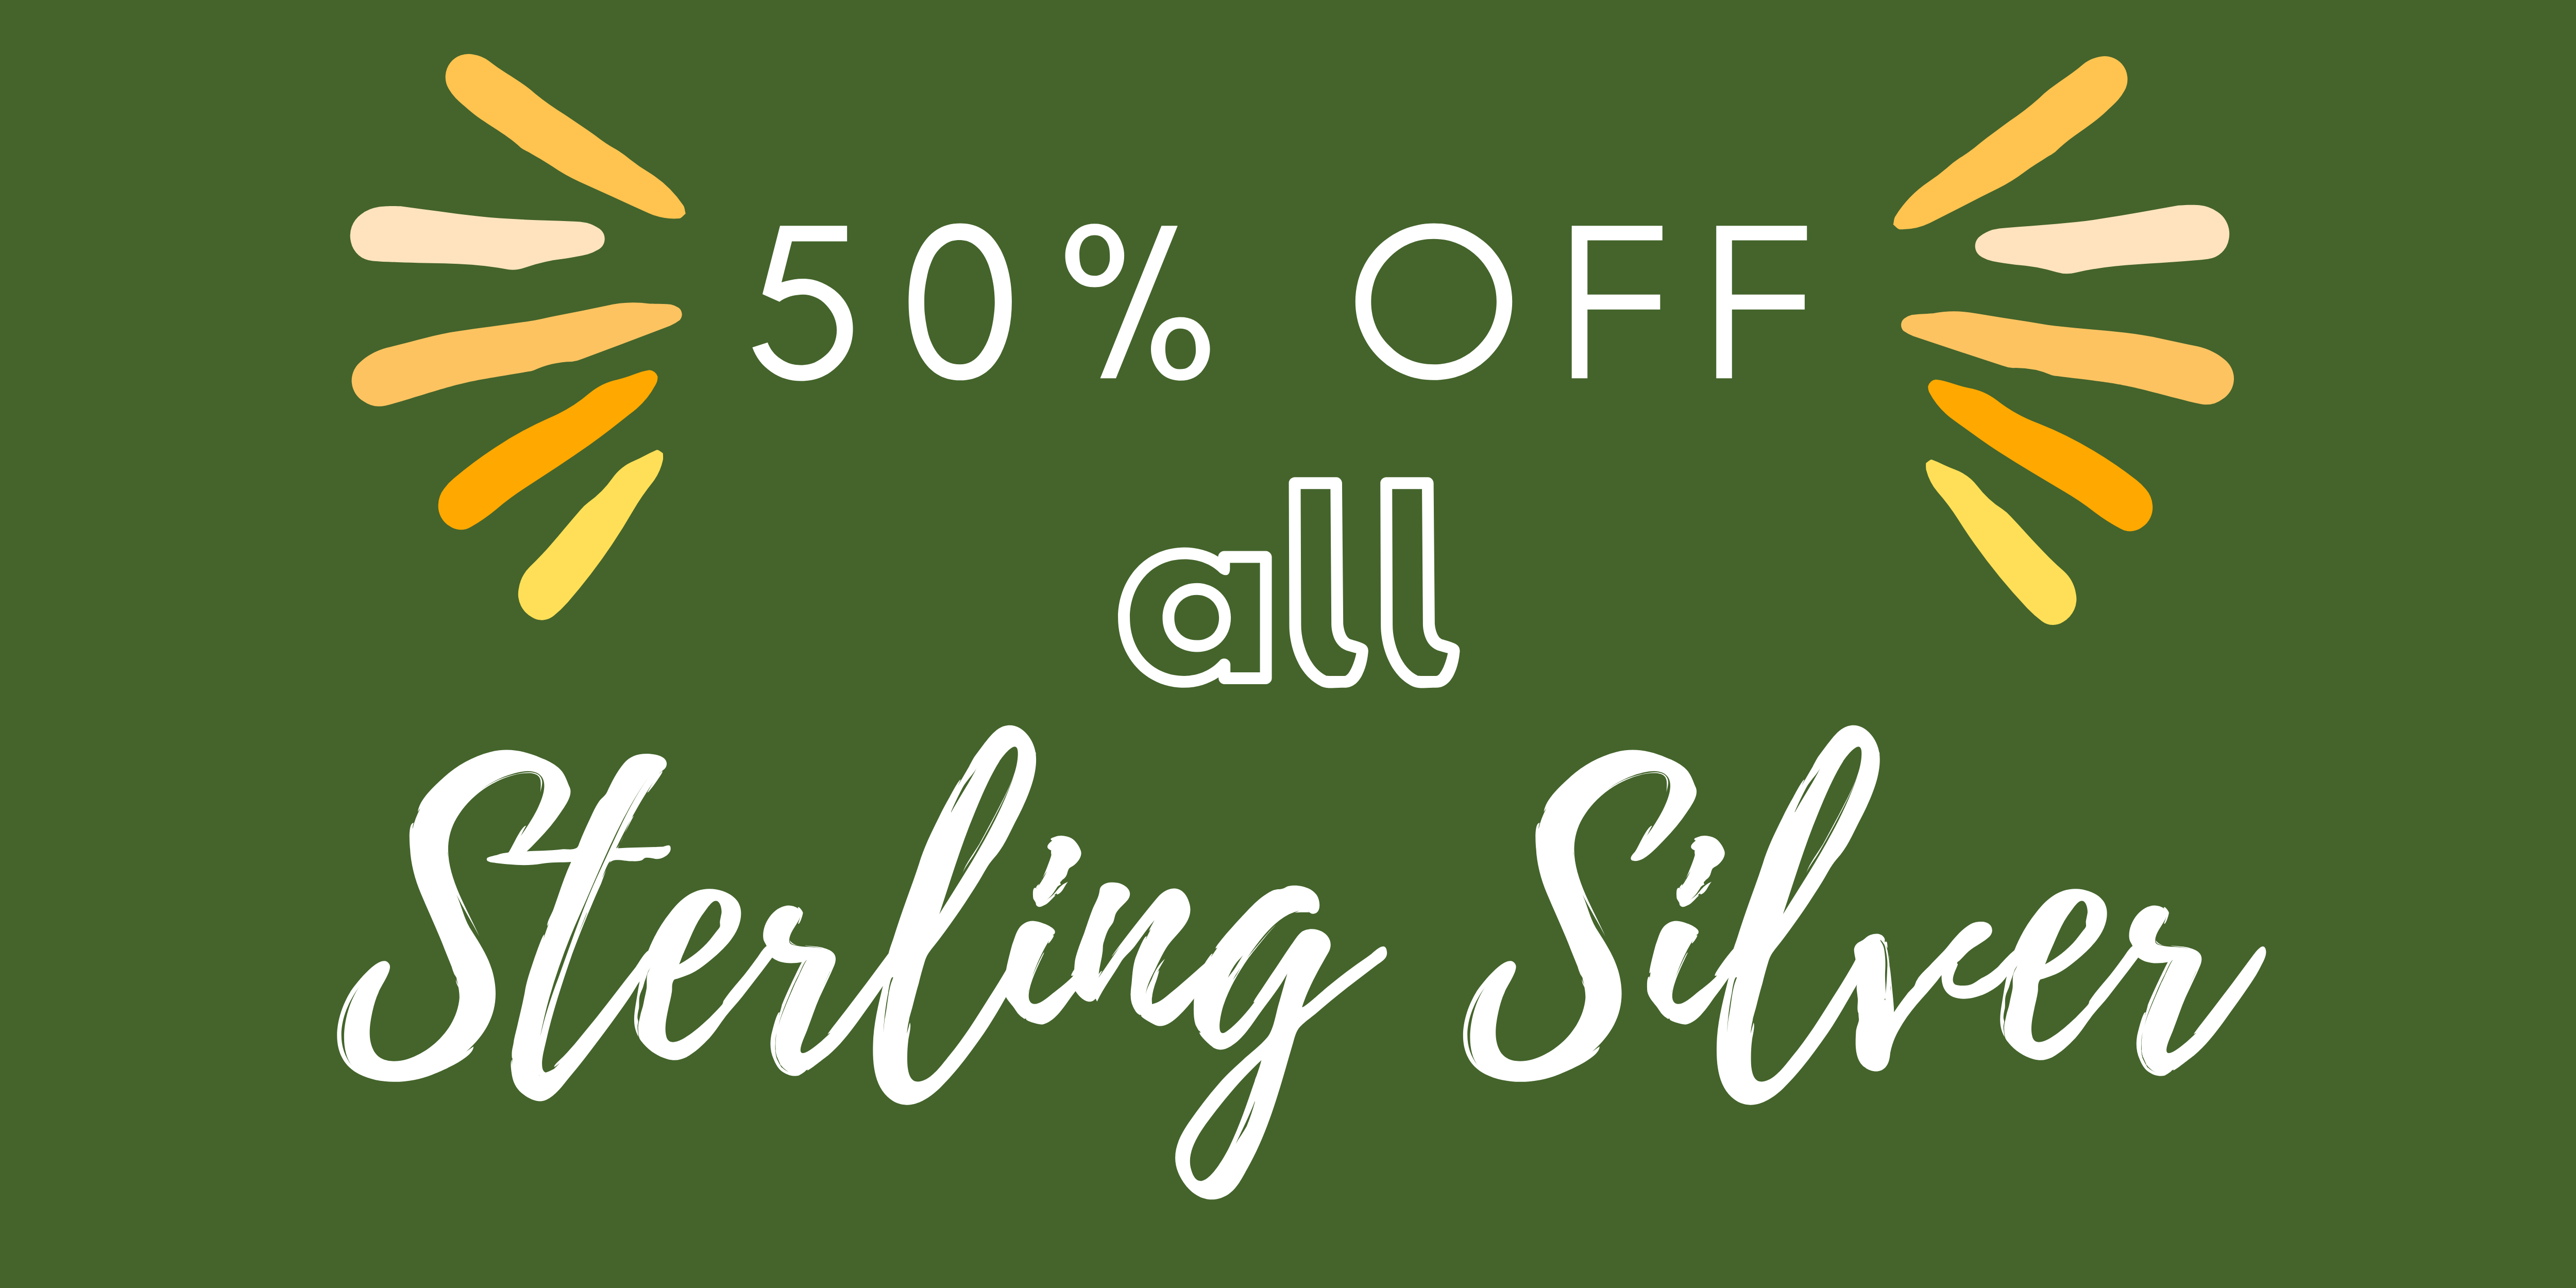 50% off sterling silver